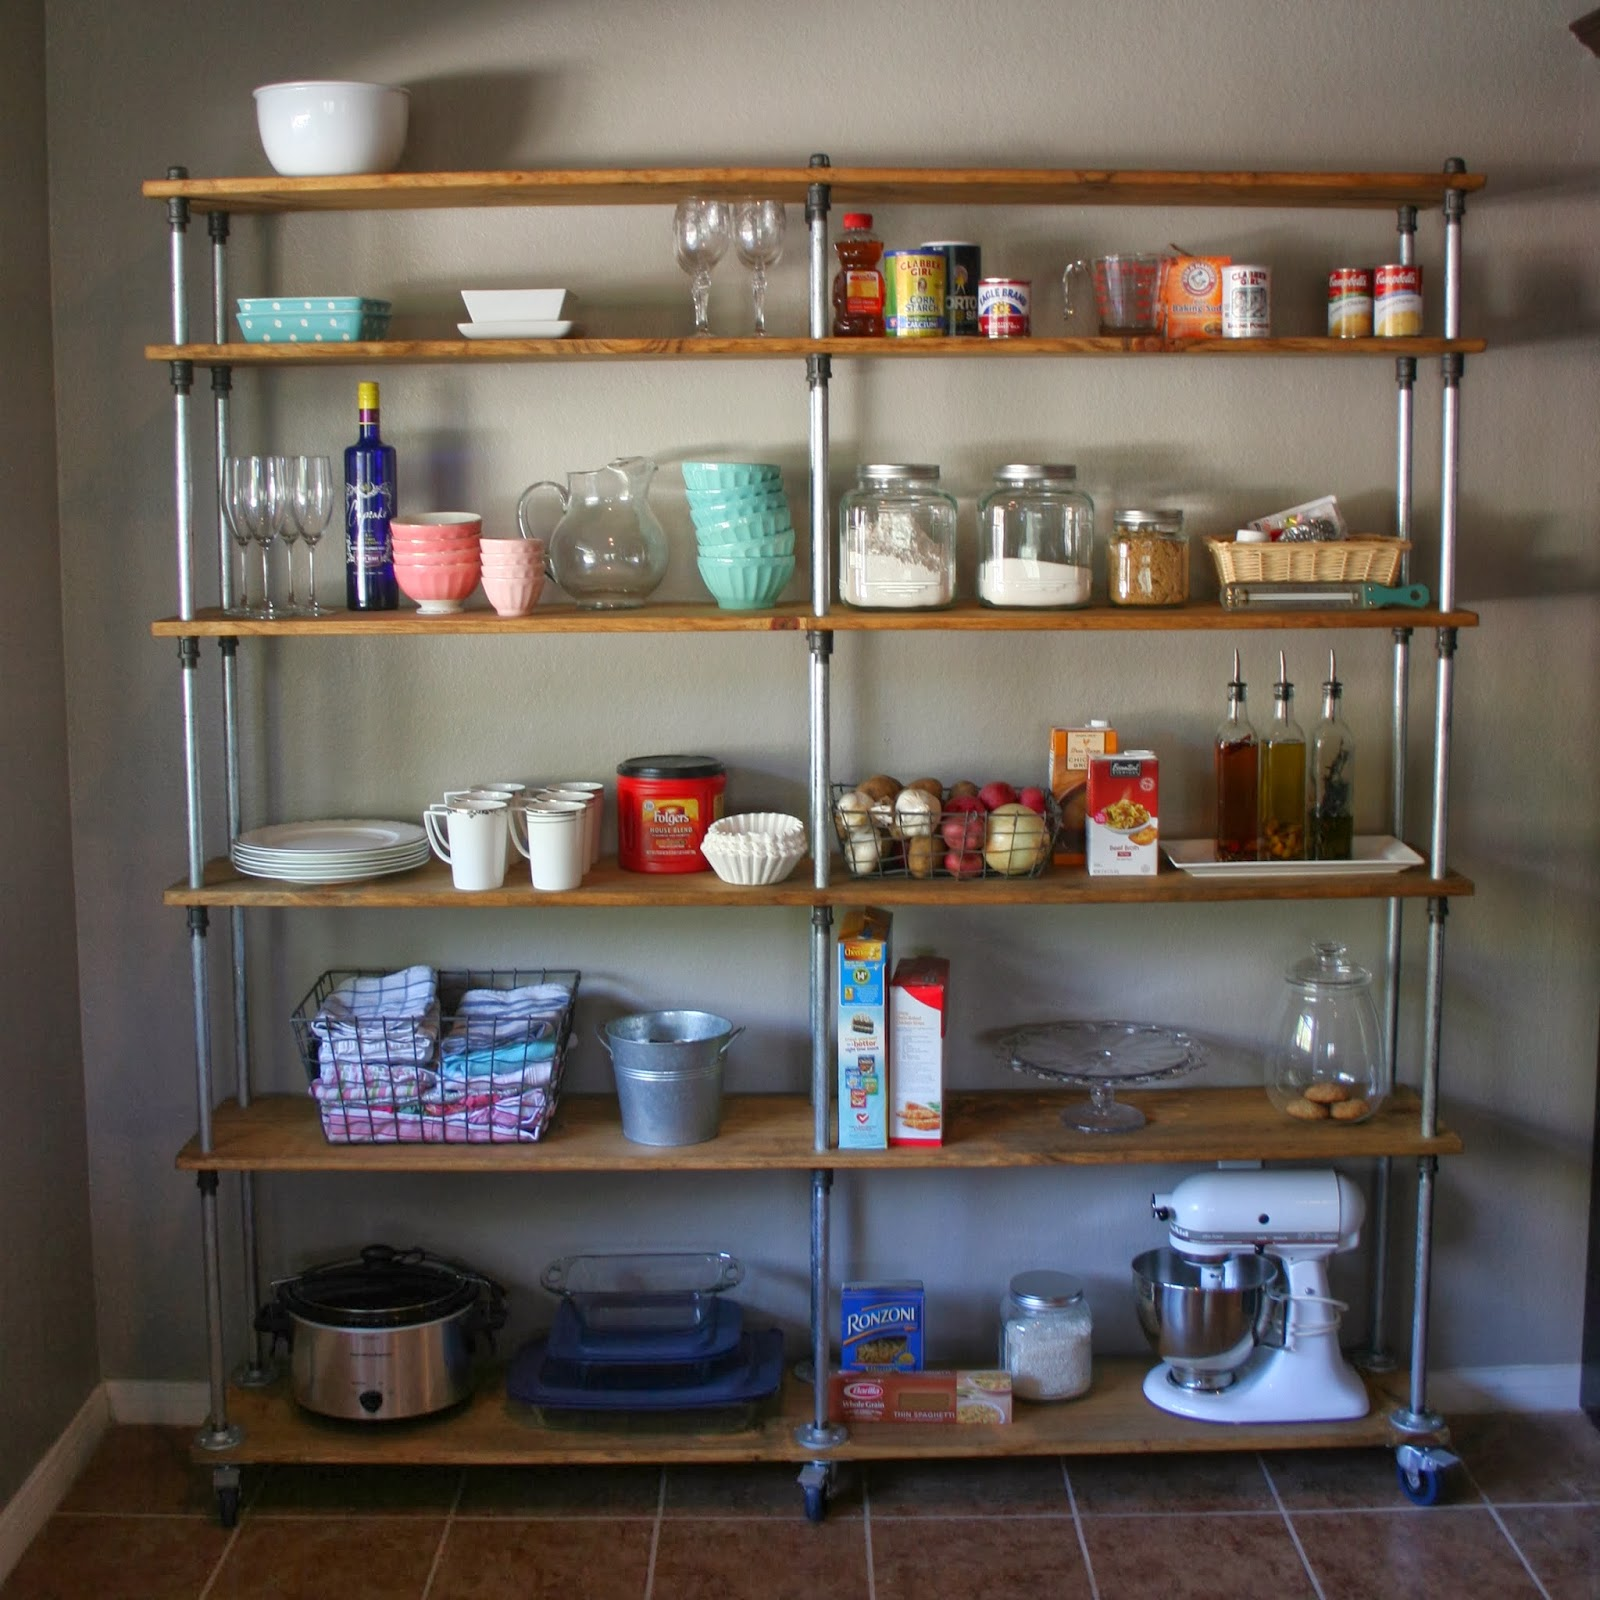 Industrial Kitchen Shelving: Just A Darling Life: A Look Into My House: Kitchen Shelving